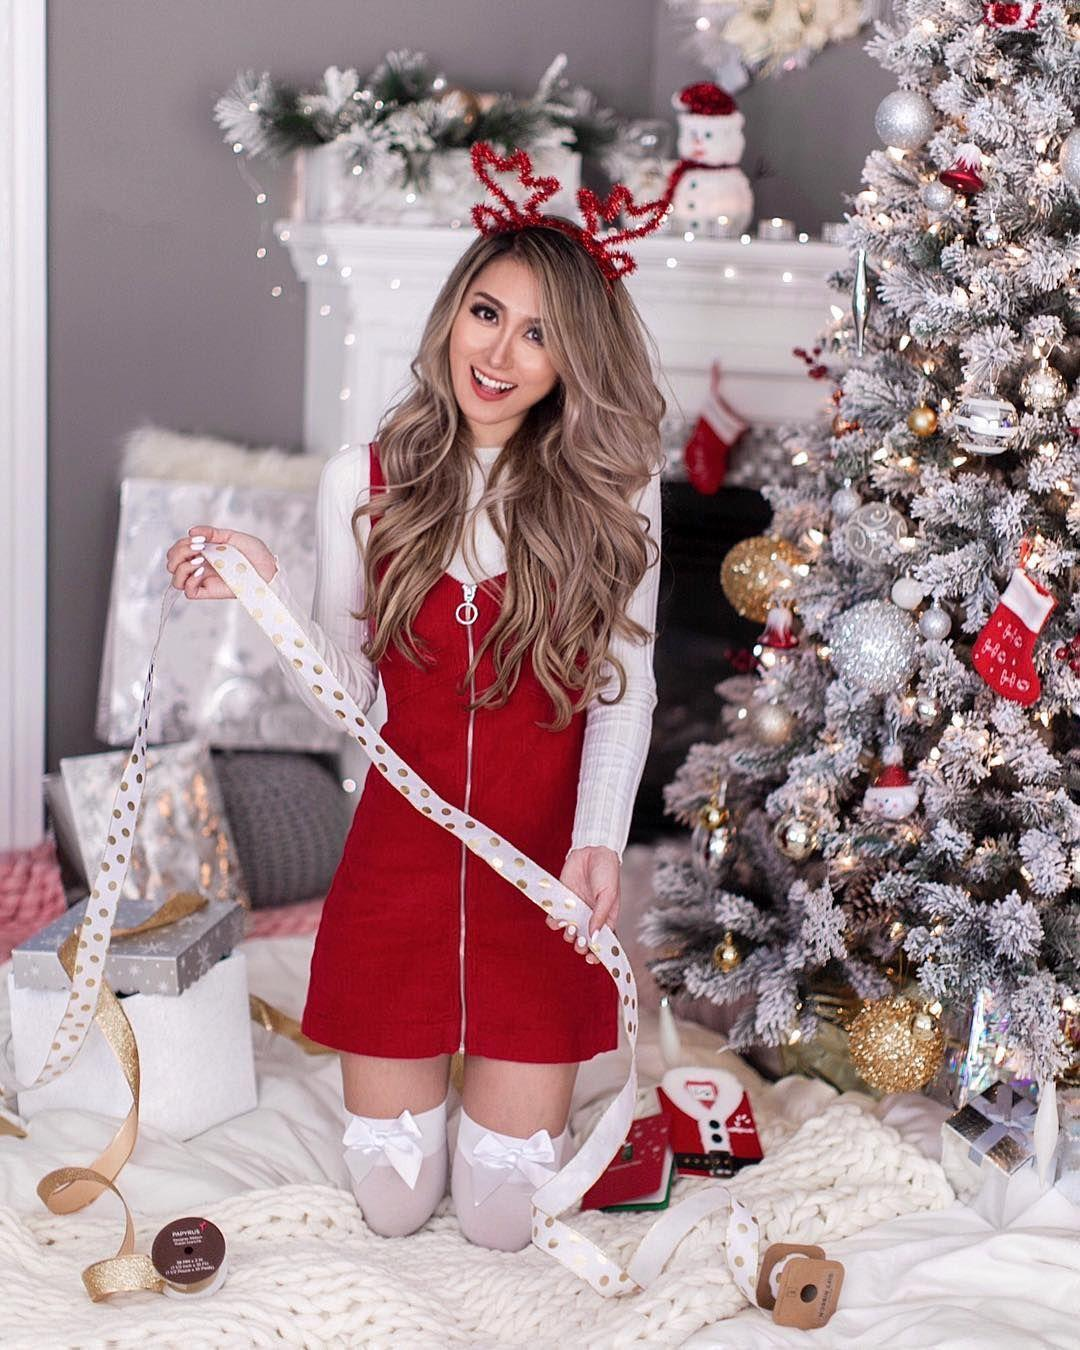 Beautiful girl in deer horns packs Christmas presents near Christmas tree